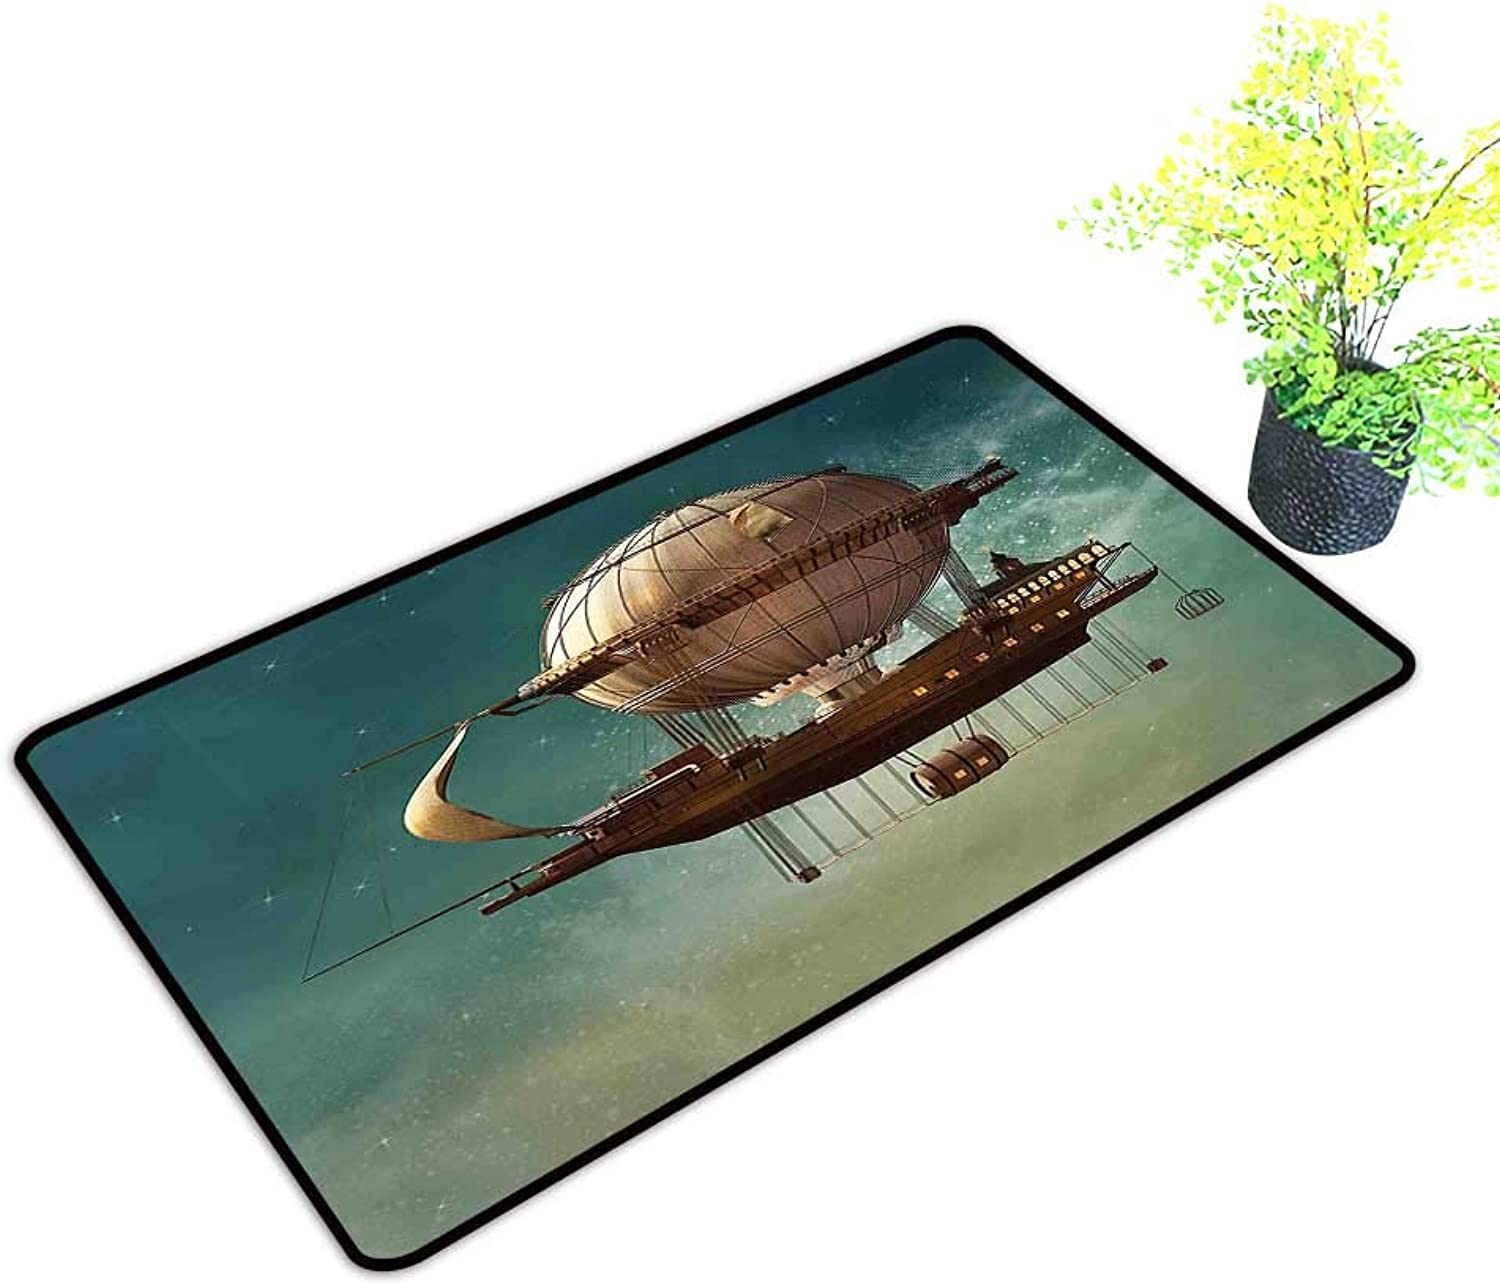 Entrance Door Mat Large Surreal Sky Scenery with Steampunk Airship Fairy Sci Fi Stardust Space Image bluee Dress Up Your Doorway W39 x H19 INCH